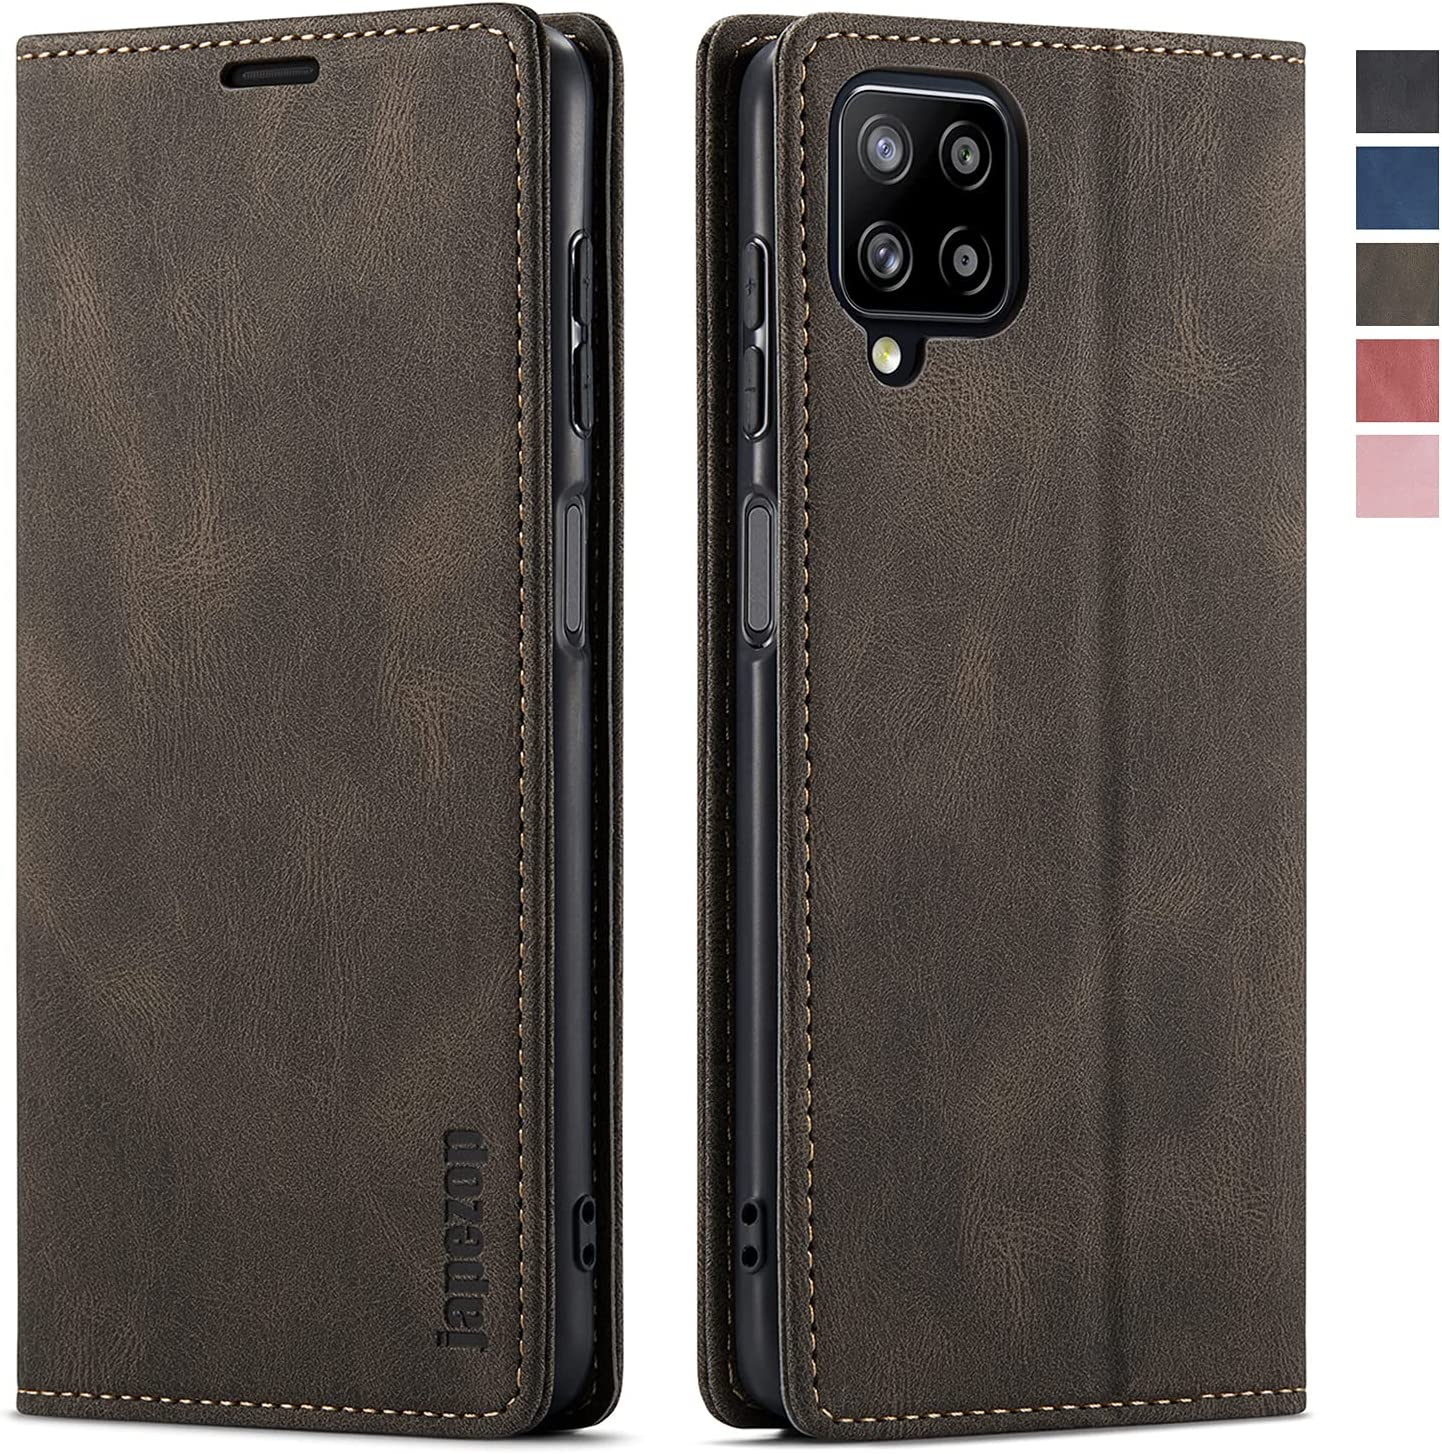 Samsung Galaxy A12 Case,Samsung Galaxy A12 Wallet Case with Card Holder [RFID Blocking] Kickstand Magnetic,Leather Flip Case for Samsung Galaxy A12 (Coffee)